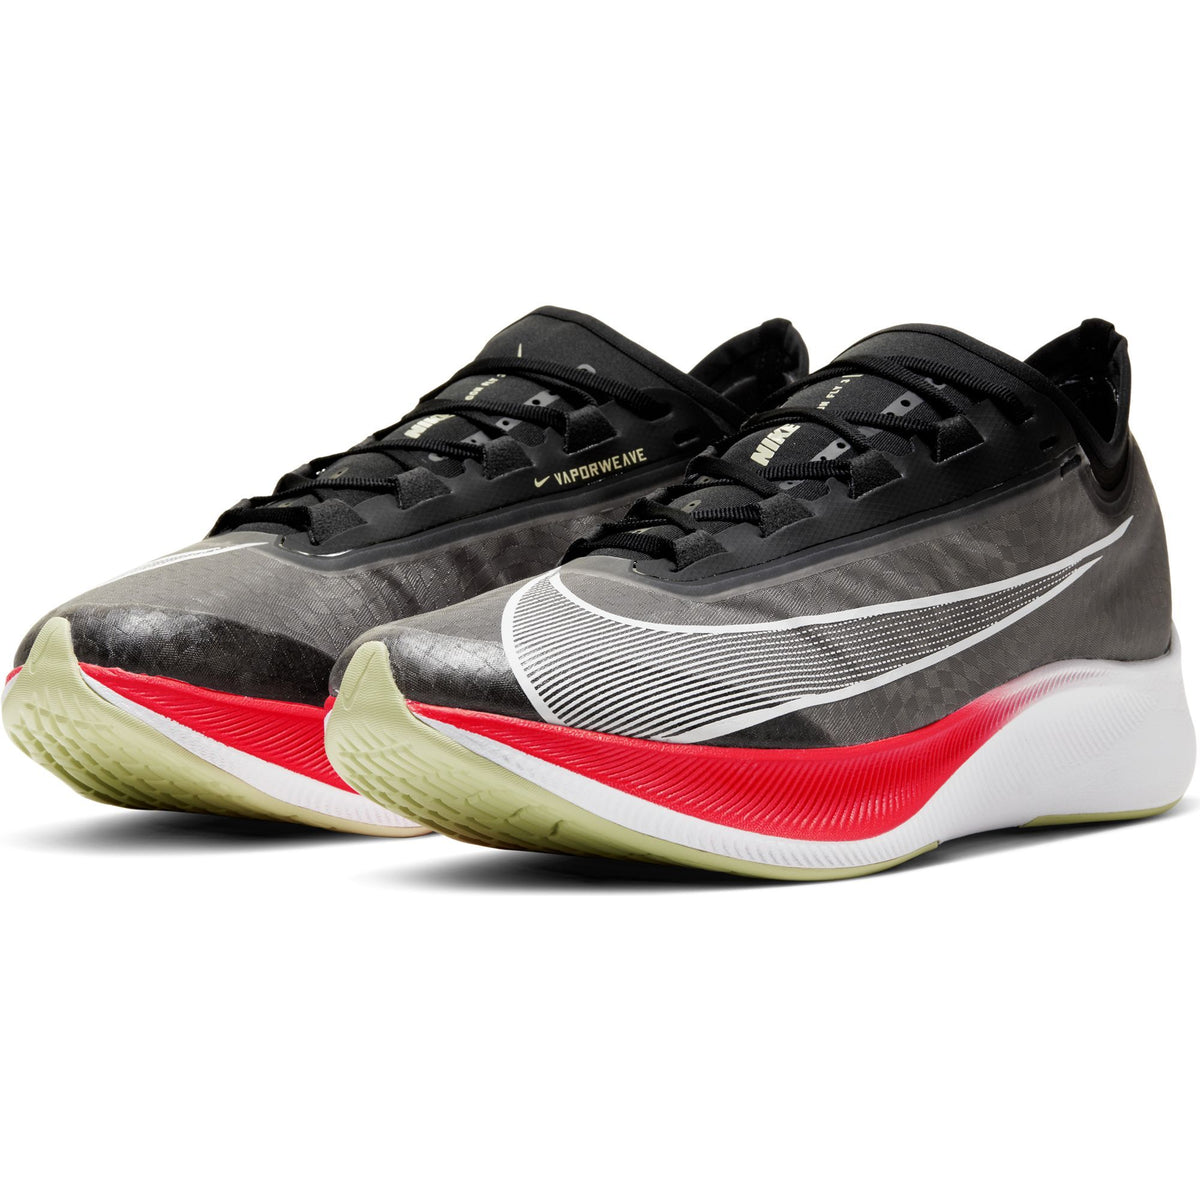 Nike Zoom Fly 3 Mens - Sole Motive